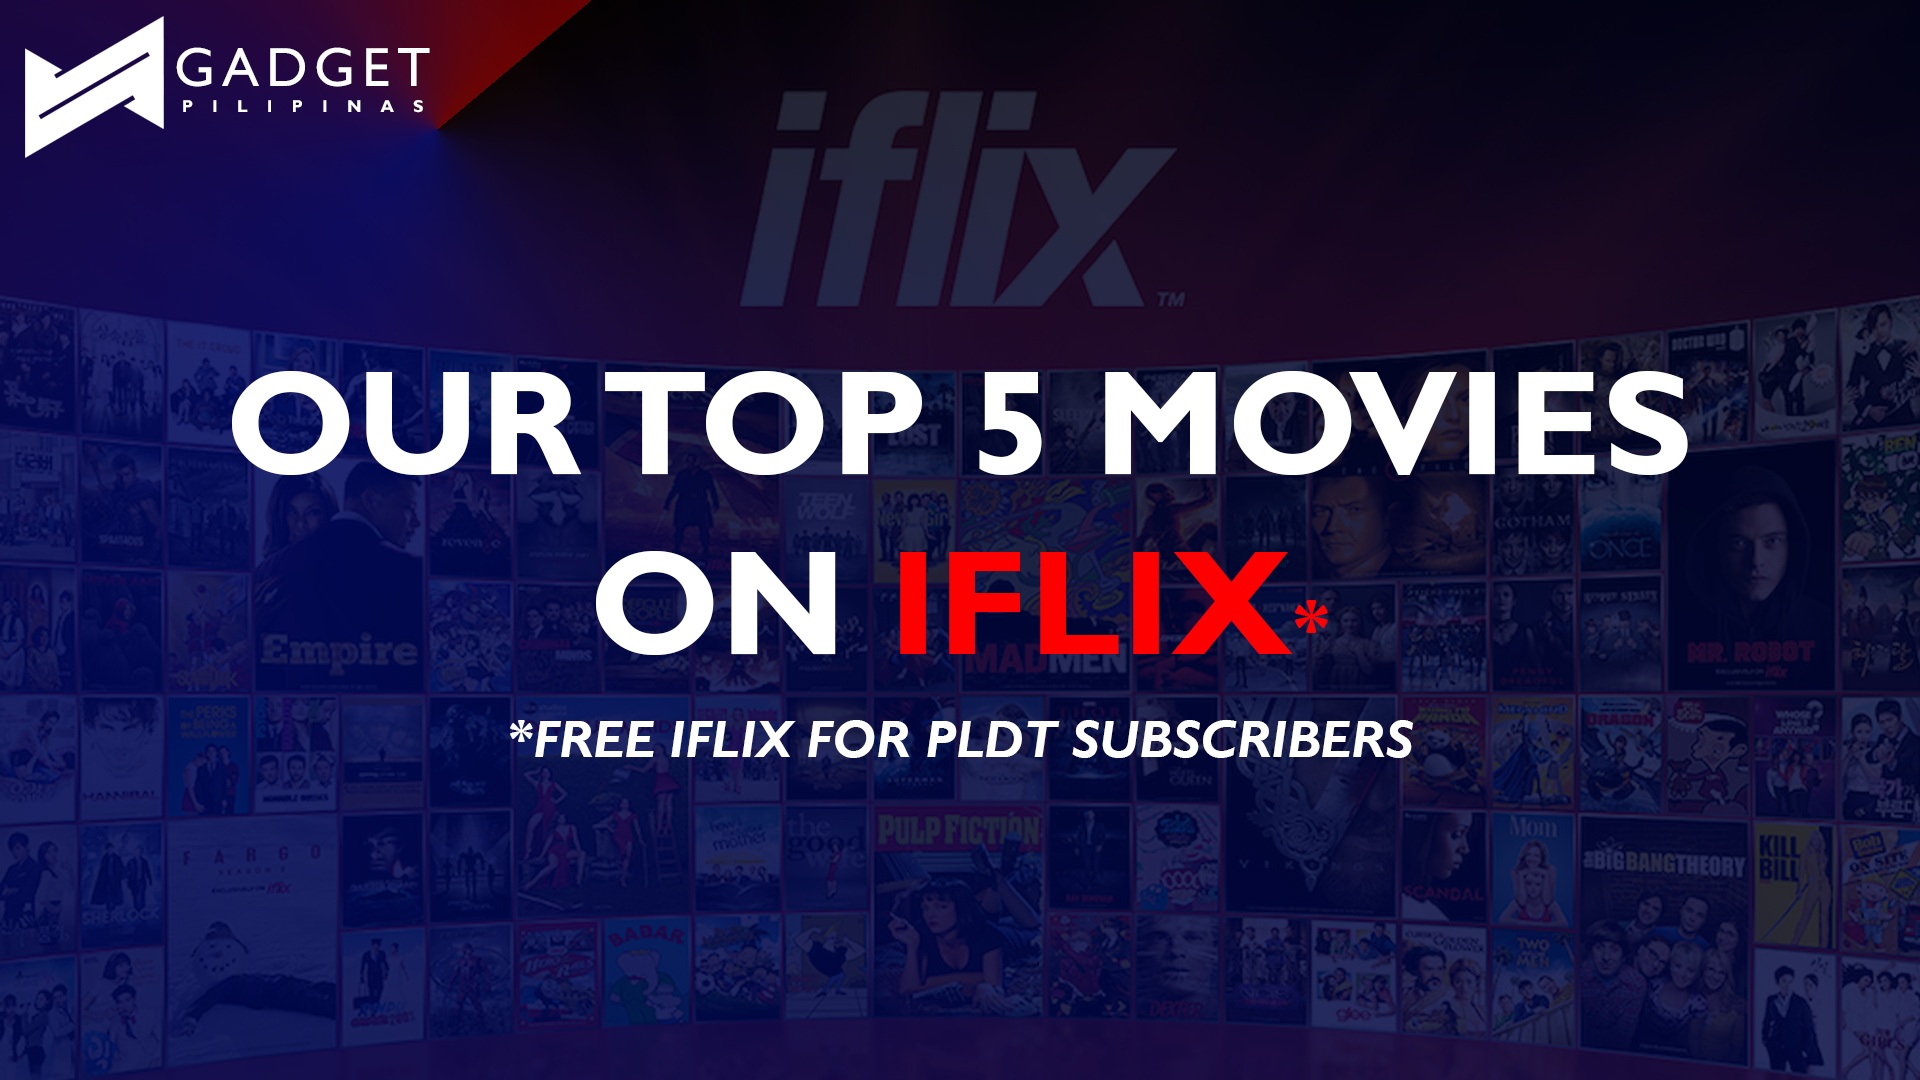 iflix free - Our top 5 movies to watch on iFlix